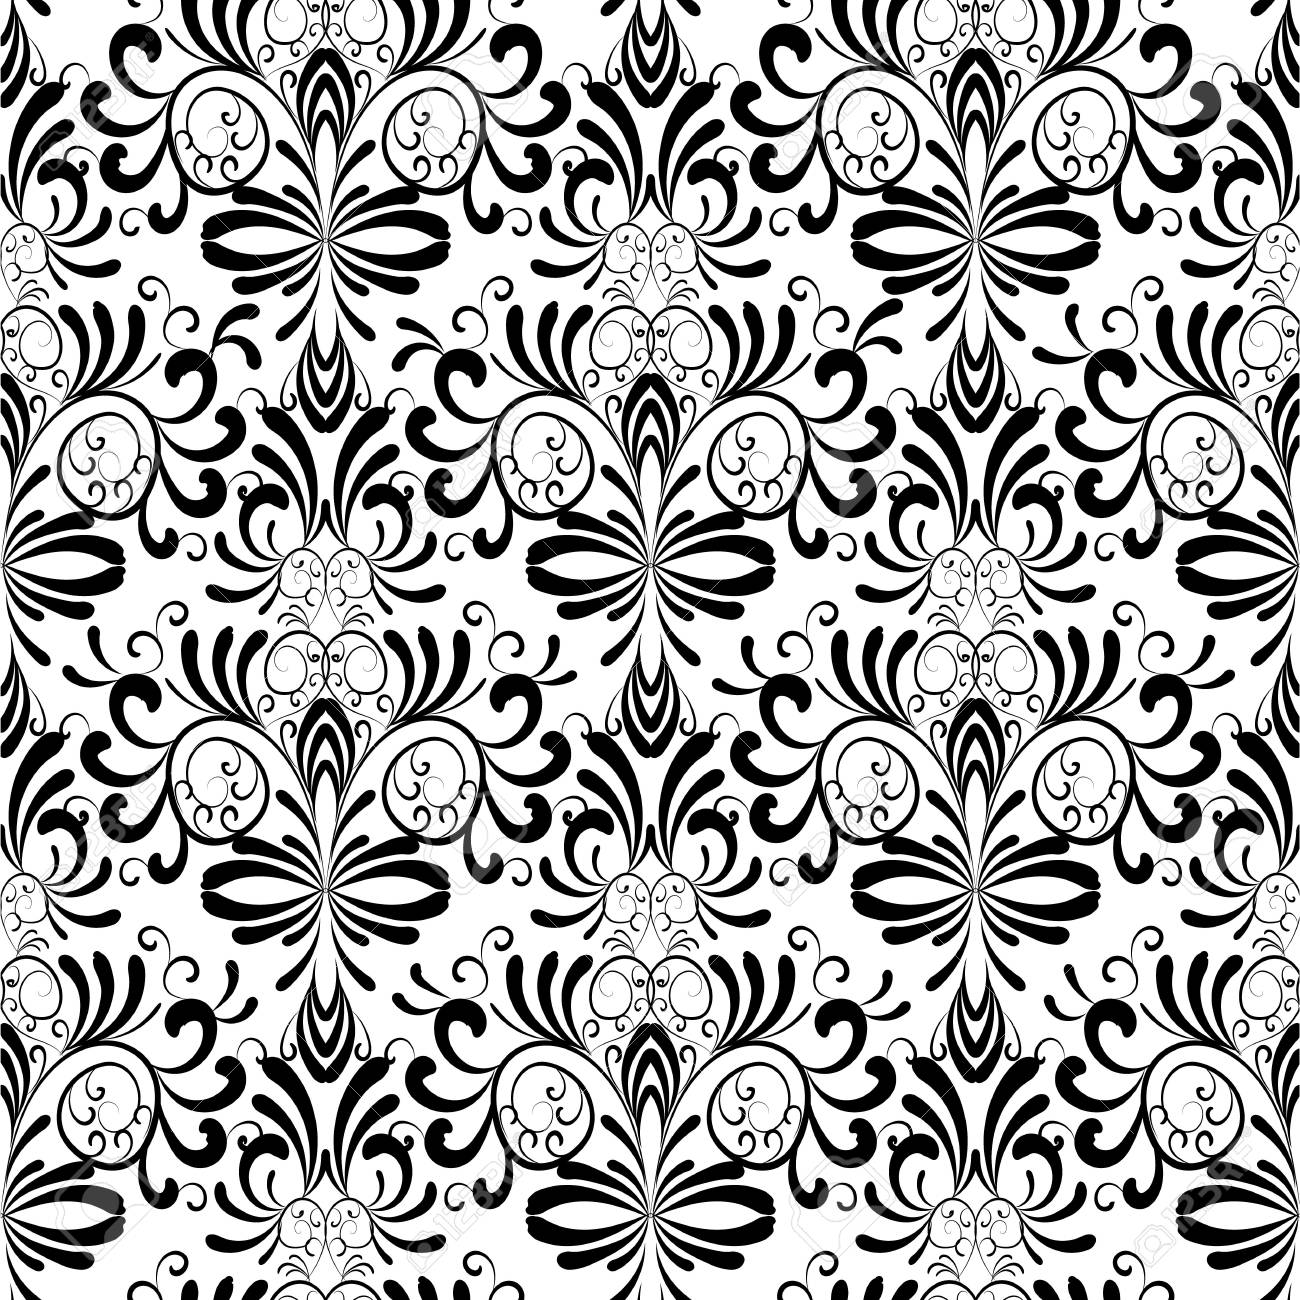 Damask Seamless Pattern Floral Vintage Black White Background